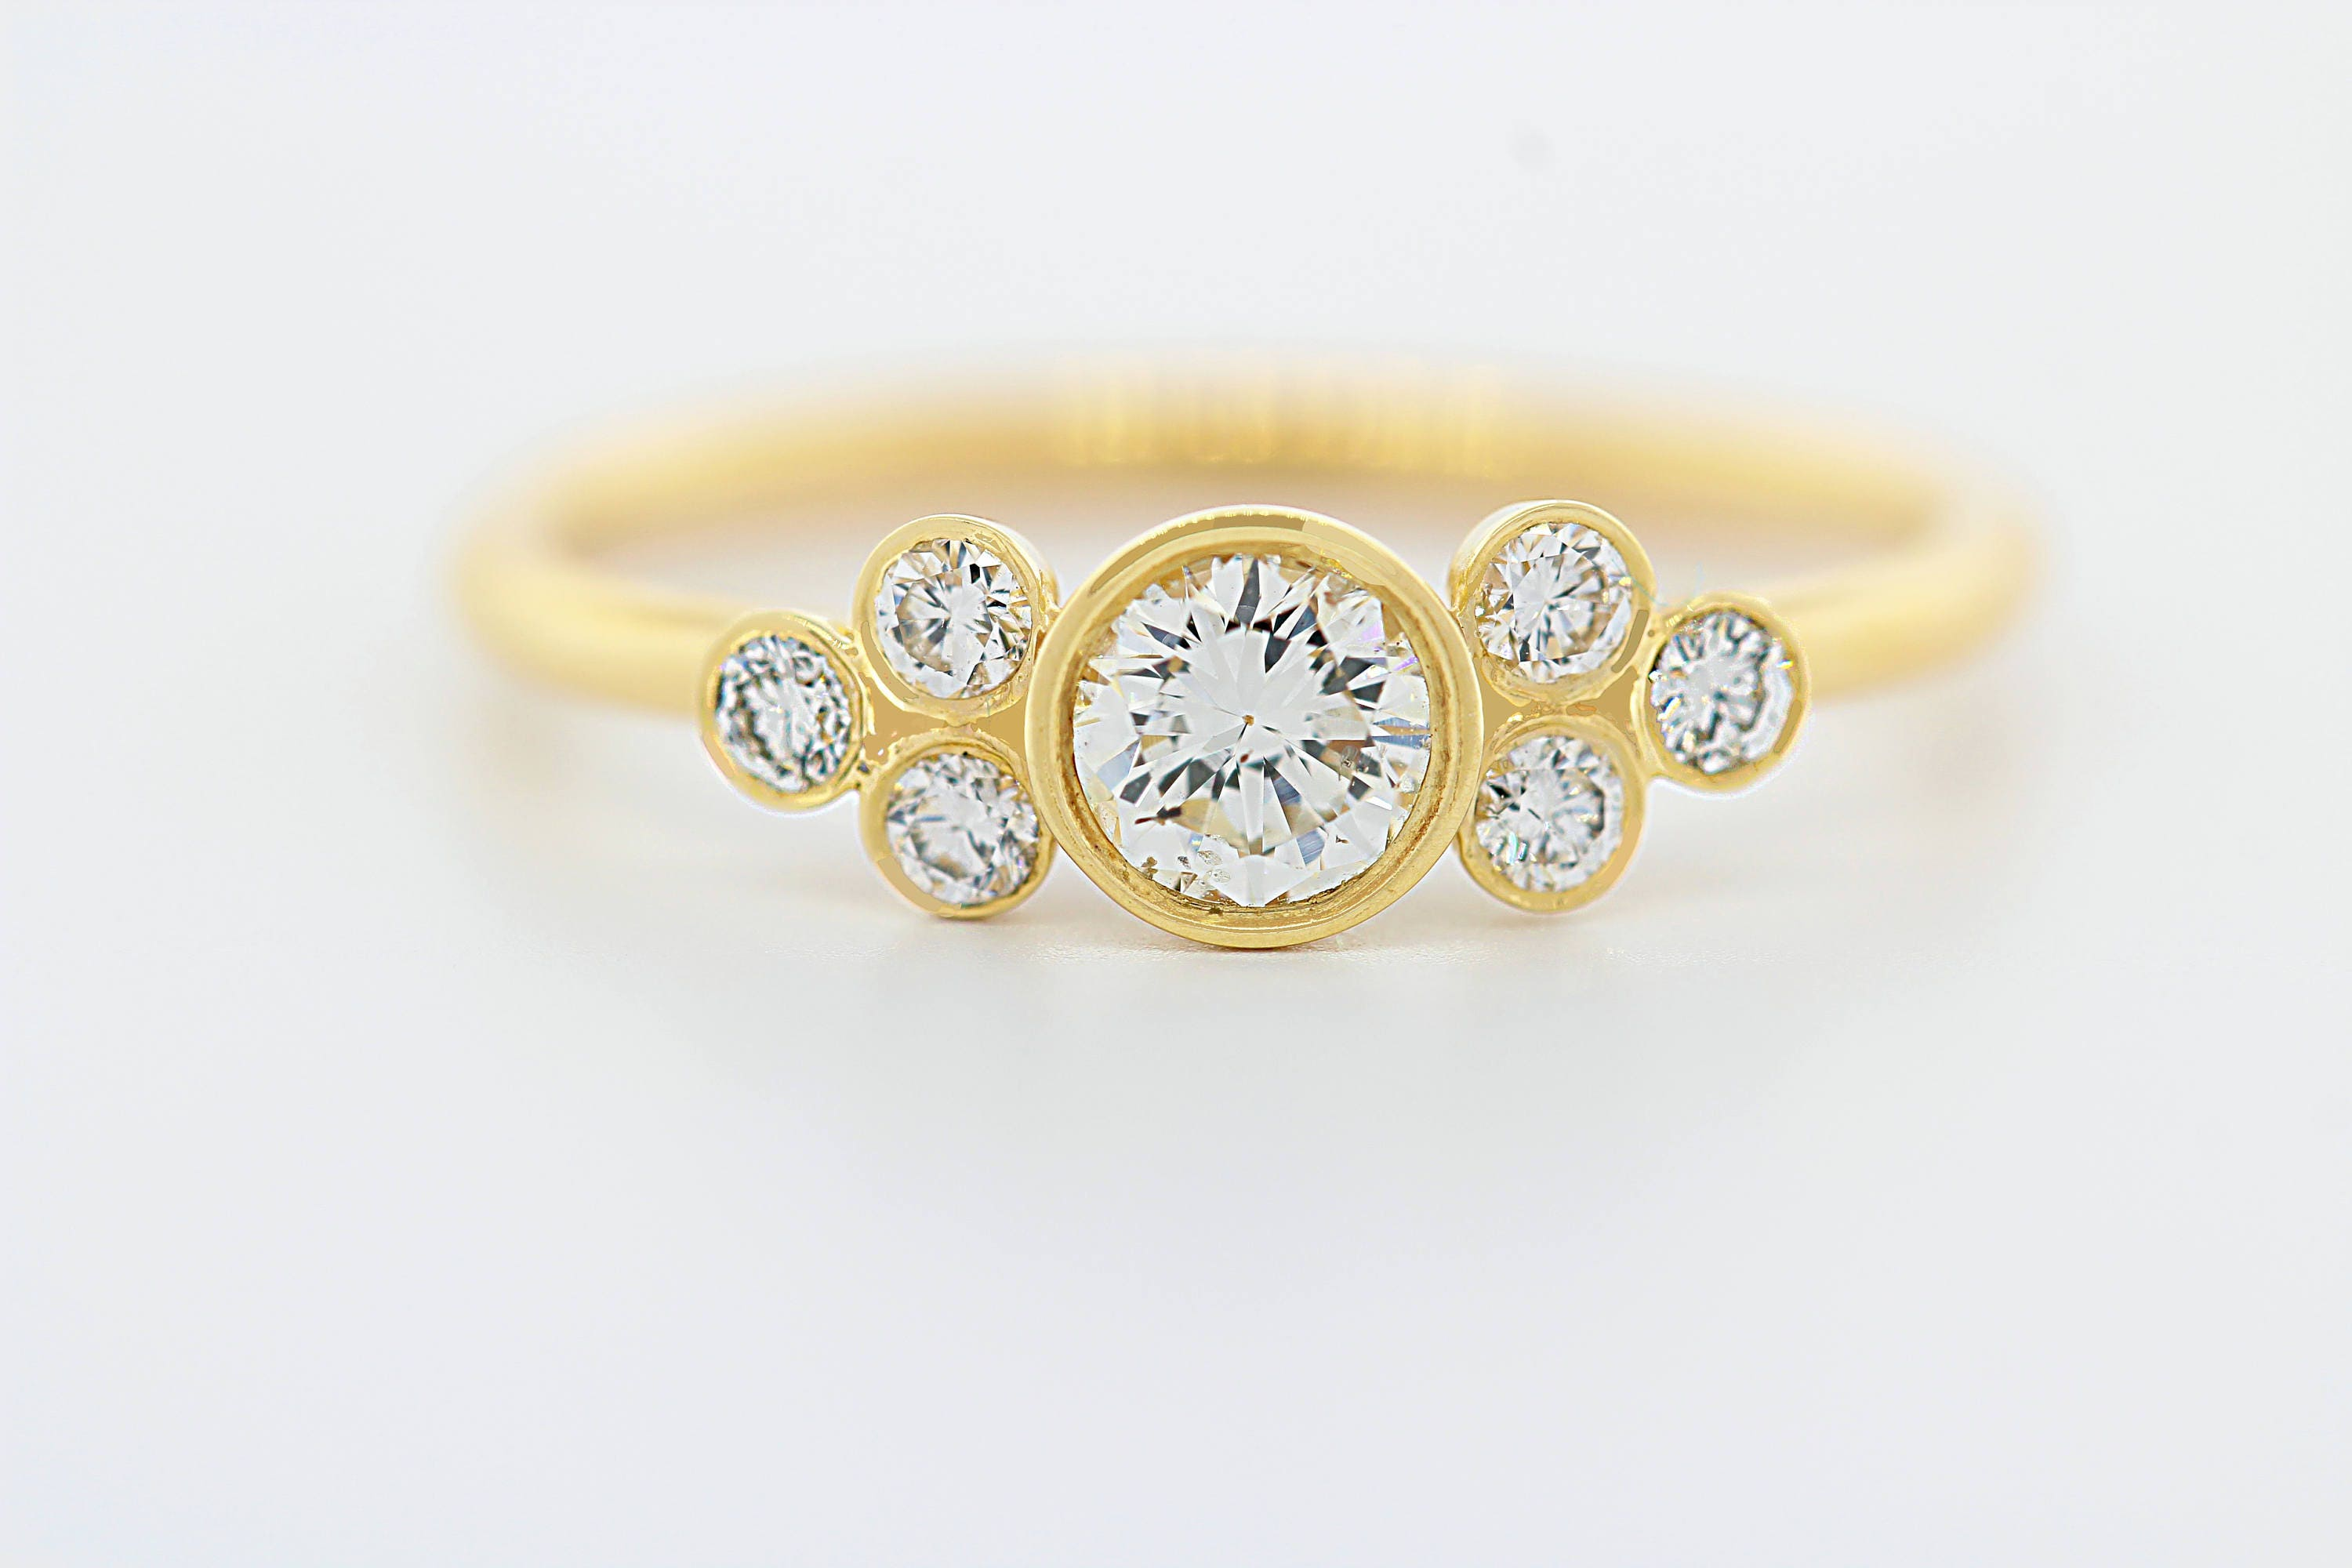 halo setting rings thin diamond carat appearance the ringgold bands pin pairing with gold ring a s highlights large engagement white robust band in